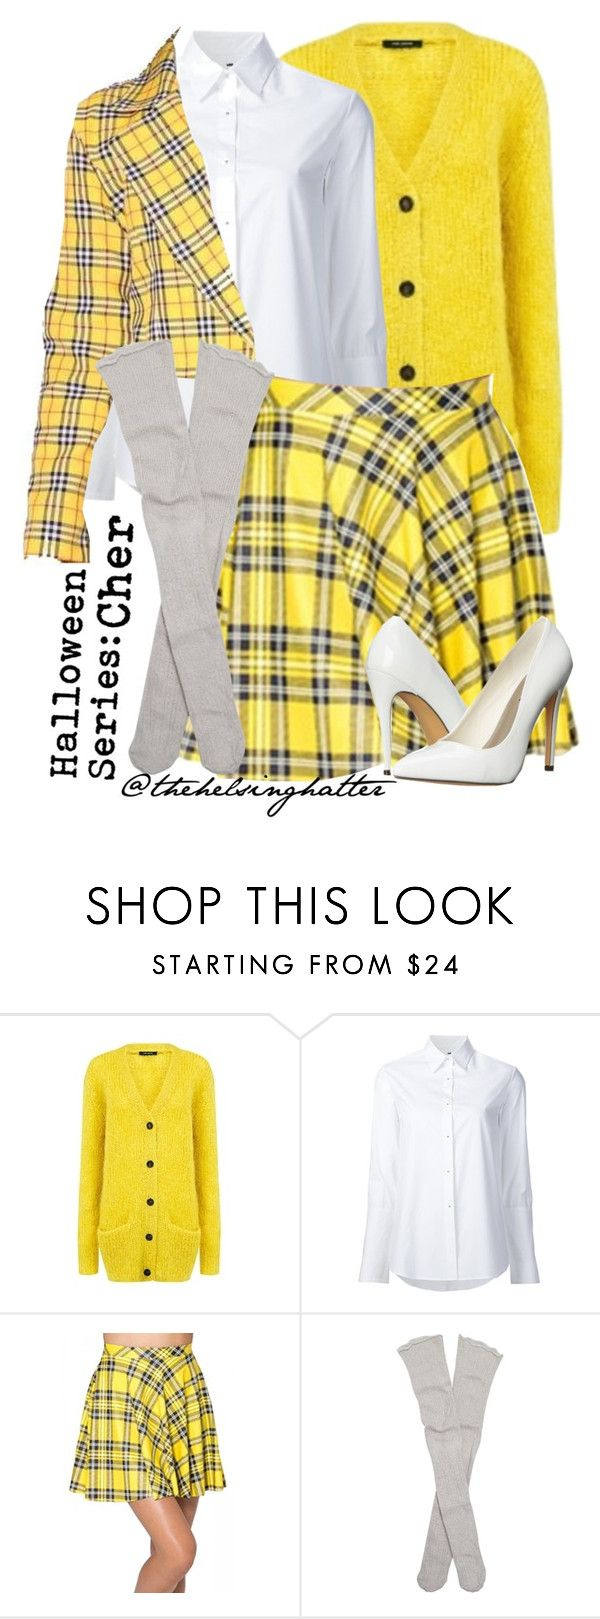 """Costumes// Cher (from Clueless)"" by thehelsinghatter ❤ liked on Polyvore featuring Pink Tartan, Misha Nonoo, Free People and Michael Antonio"